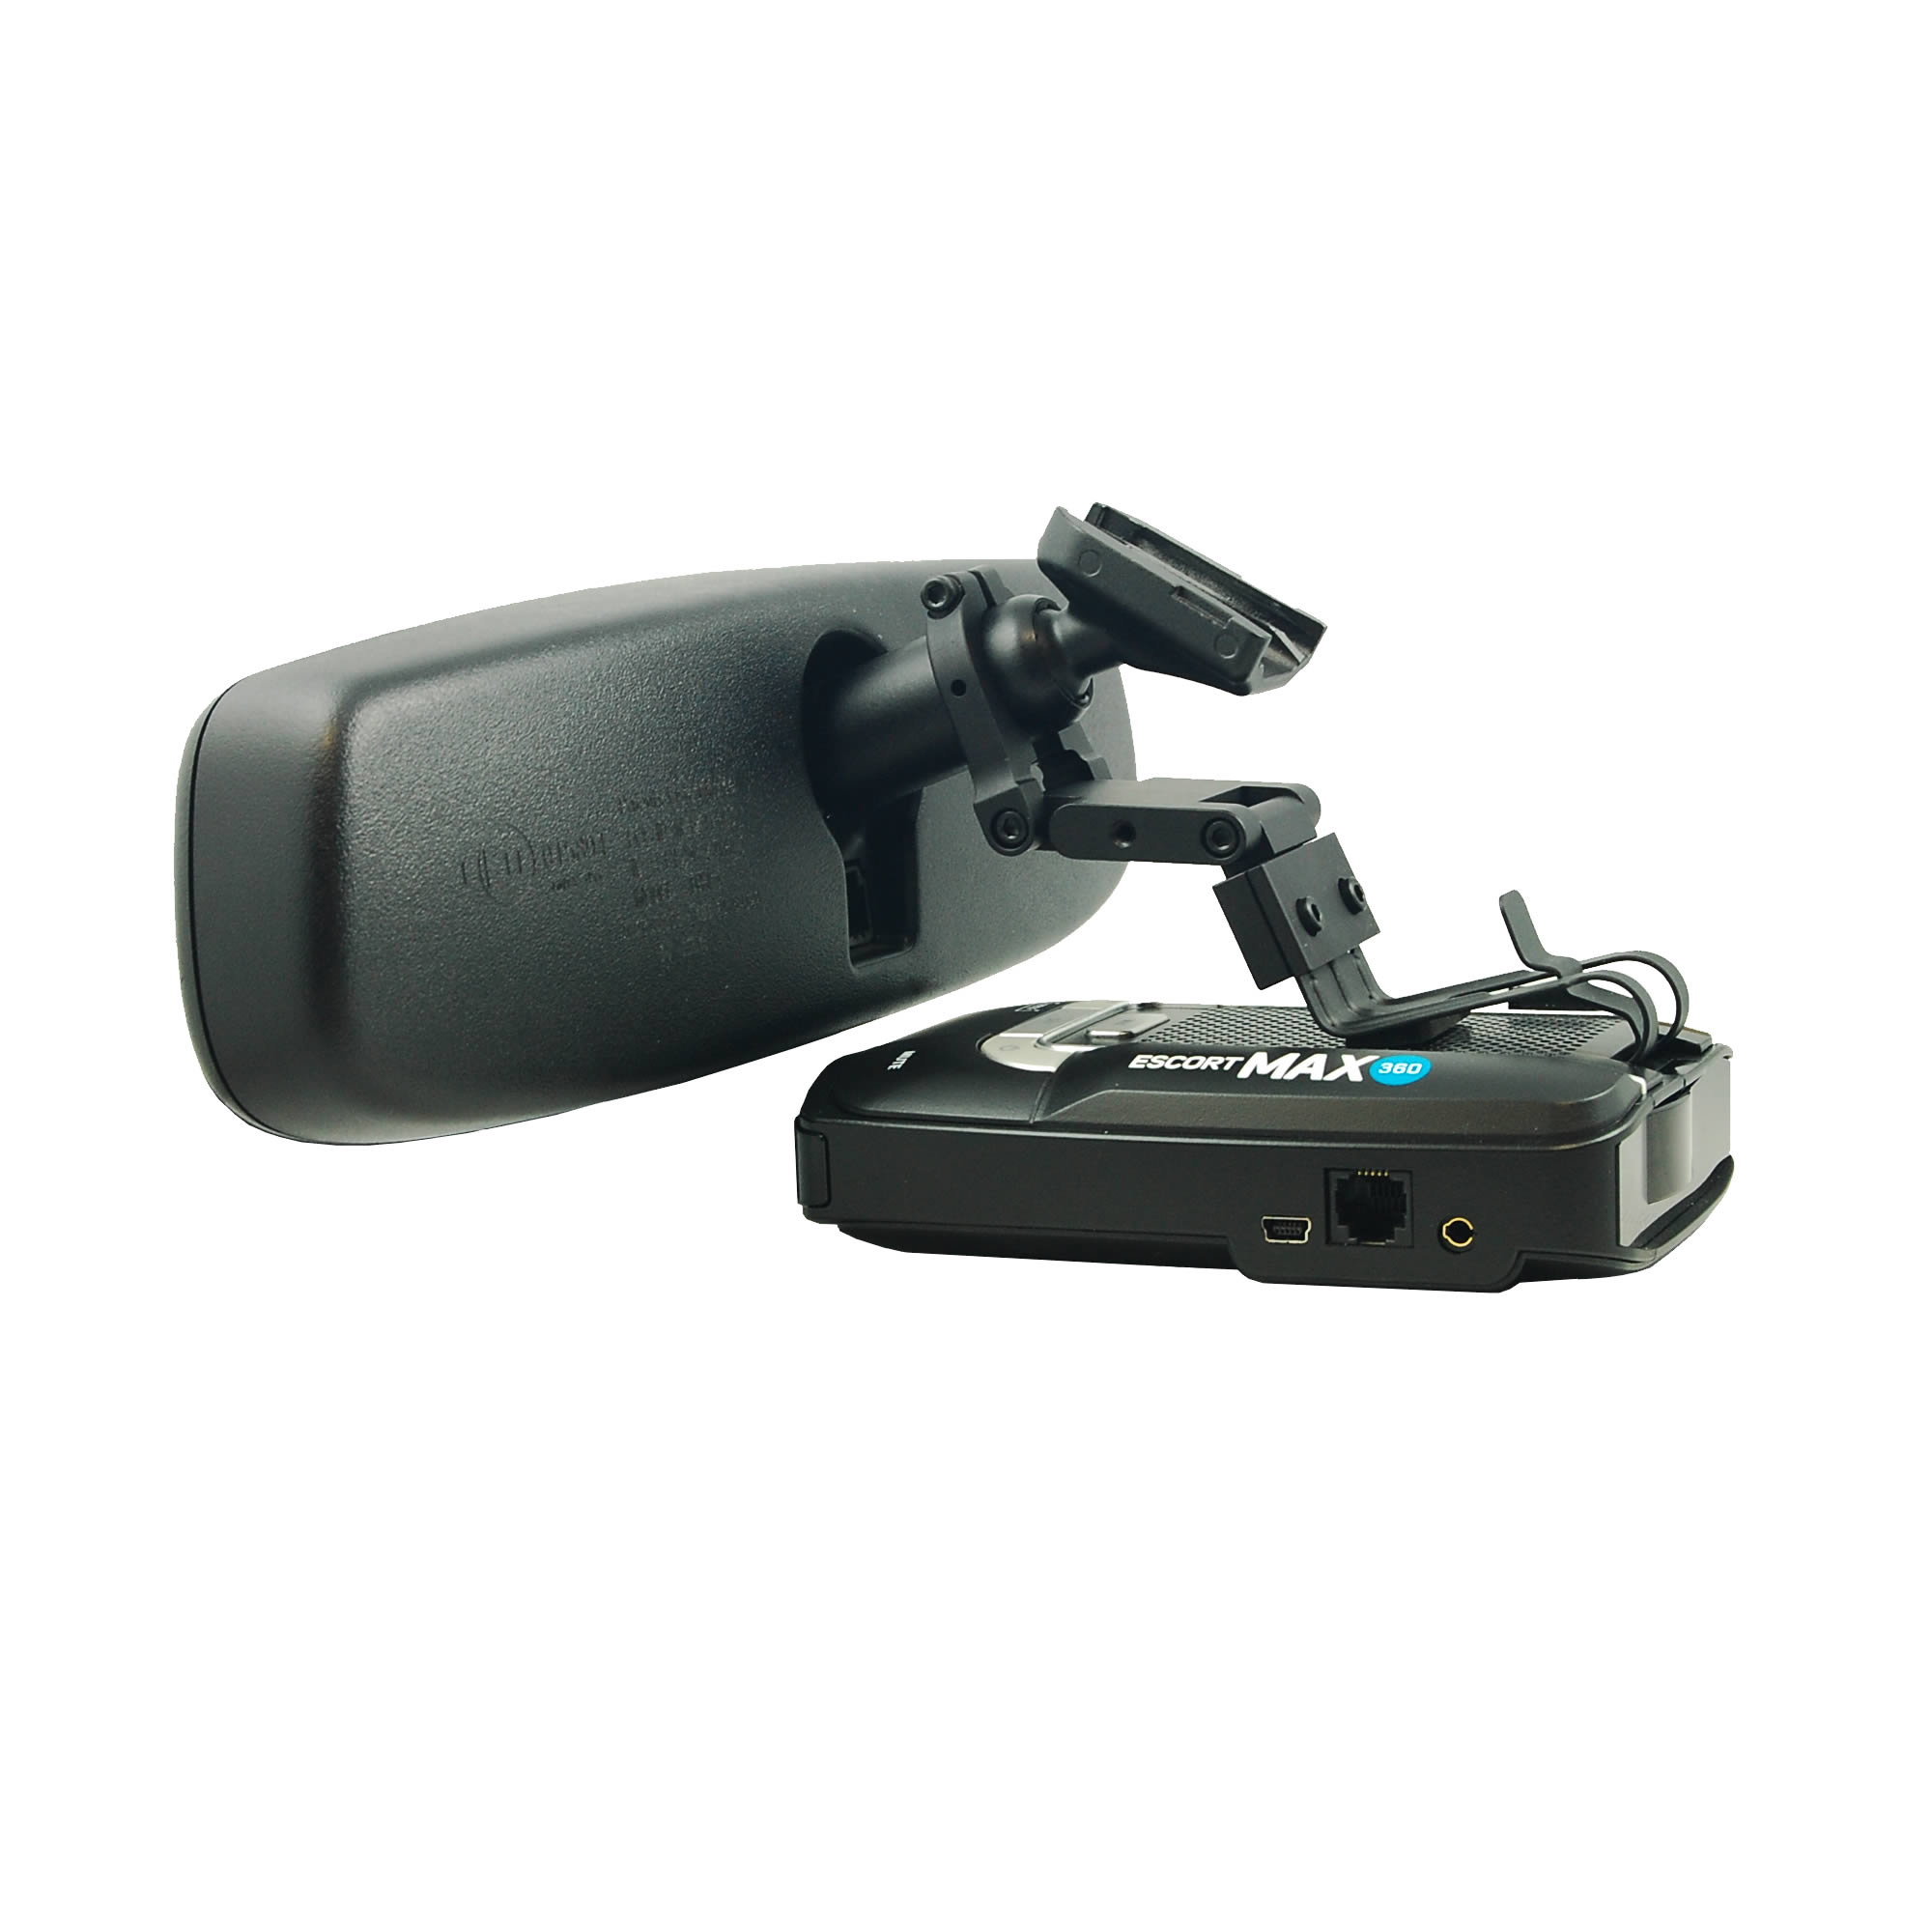 BlendMount BMX-2000R Radar Detector Mount for Escort Max/Max2/Max 360, Compatible